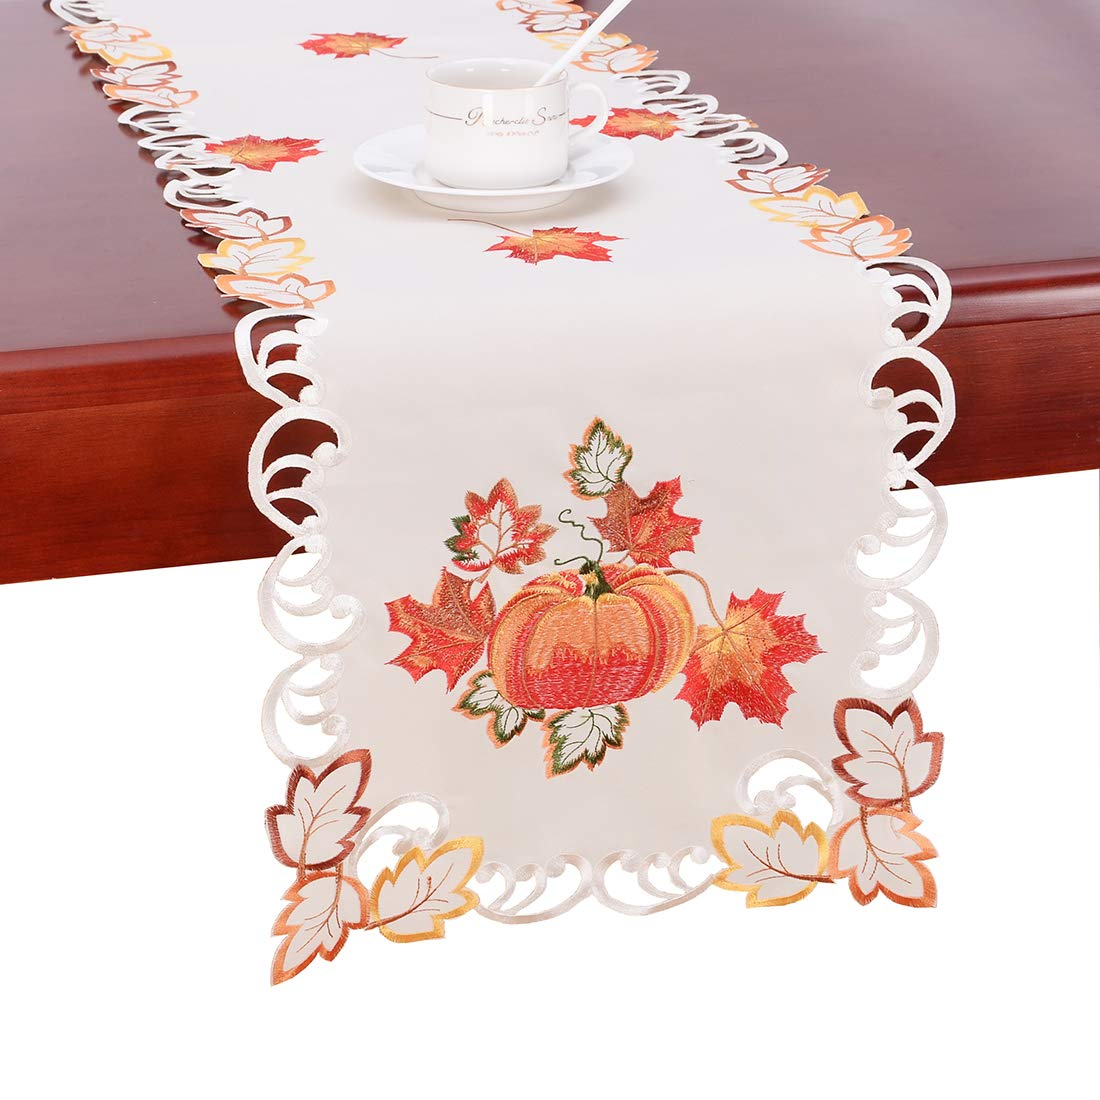 Simhomsen Thanksgiving Harvest Pumpkins Table Runners for Autumn Or Fall Decorations (14 × 90 Inch)